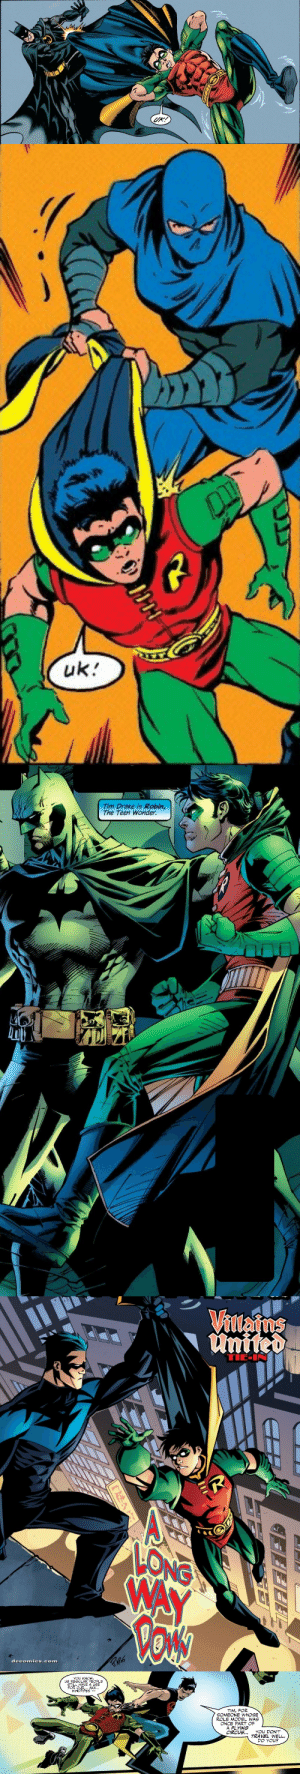 meara-eldestofthemall: I think I just figured out why Tim's new costume doesn't have a cape with it.: UK!   uk   Tim Drake is Robin,  The Teen Wonder.   Vilafns  united  TIE-I  LIITTTT  LONG  WAY  Vo'N  WARS  dccomics.com   YOU KNOW  US REGULAR PEOPLE  STILL HAVE A USE  FOR OUR... AKK...  WINDPIPES--  TIM, FOR  SOMEONE WHOSE  ROLE MODEL WAS  ONCE PART OF  A FLYING  CIRCUS...  YOU DON'T  TRAVEL WELL  DO YOU? meara-eldestofthemall: I think I just figured out why Tim's new costume doesn't have a cape with it.